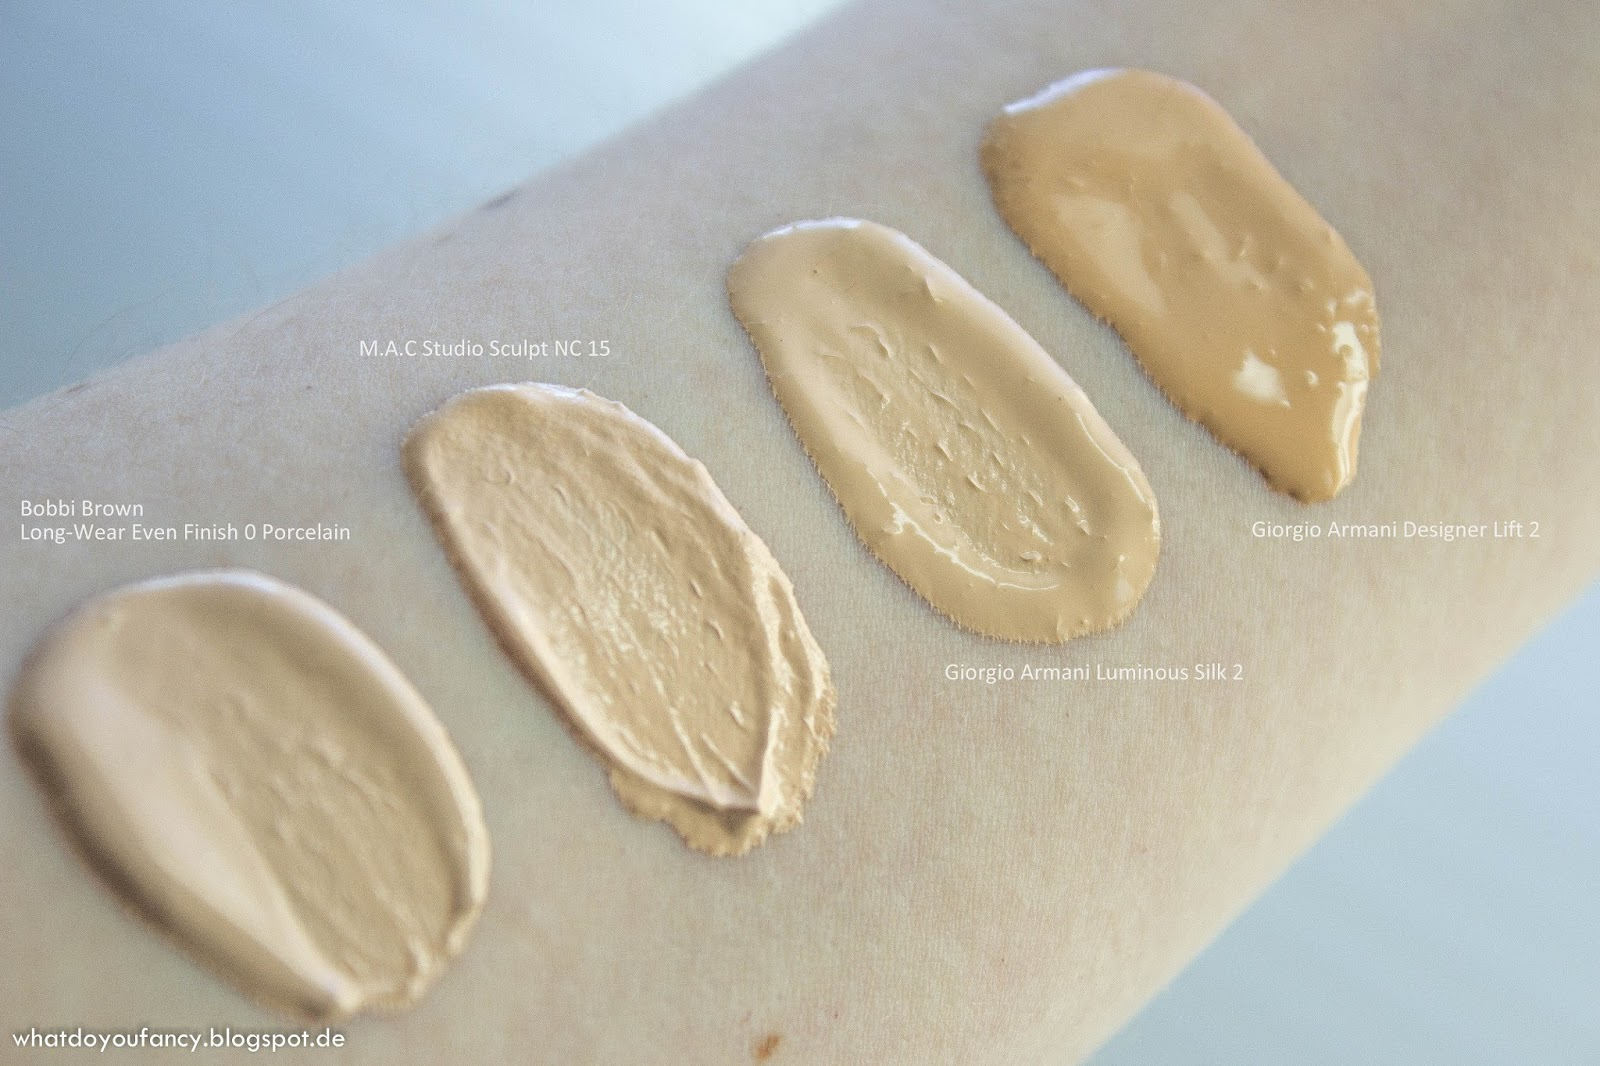 Helle Foundations #4: Giorgio Armani Luminous Silk 2